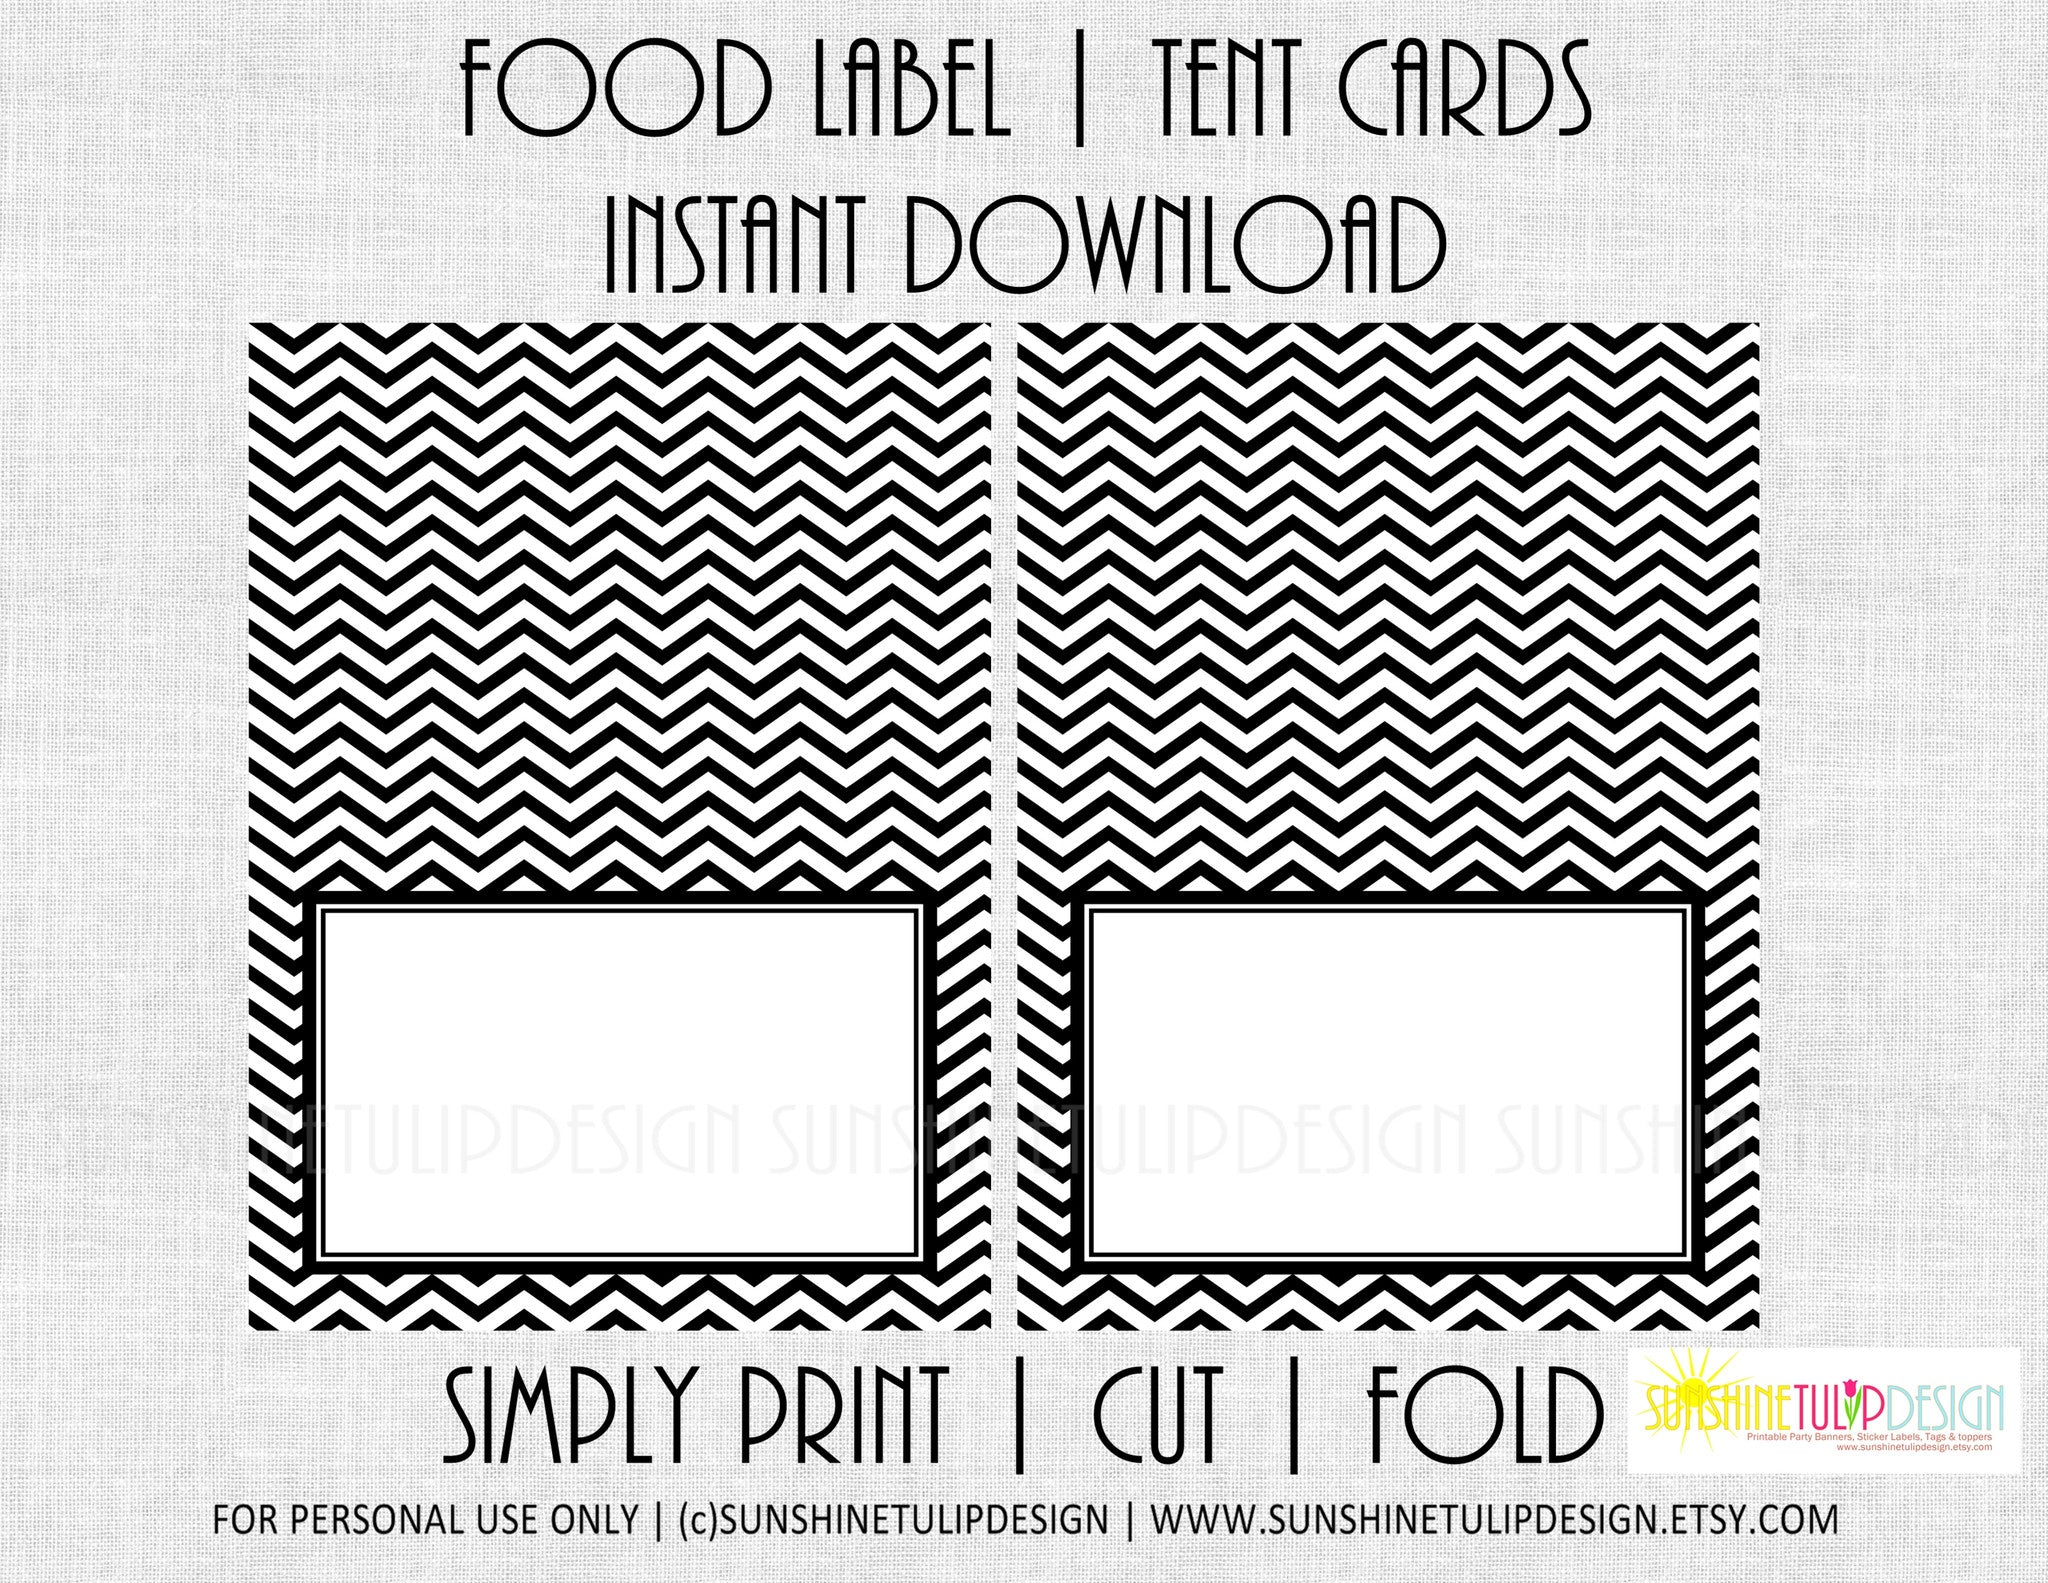 photo relating to Printables Food called Printable Food stuff Label Tent Playing cards Black White Chevron All Celebration playing cards by means of SUNSHINETULIPDESIGN